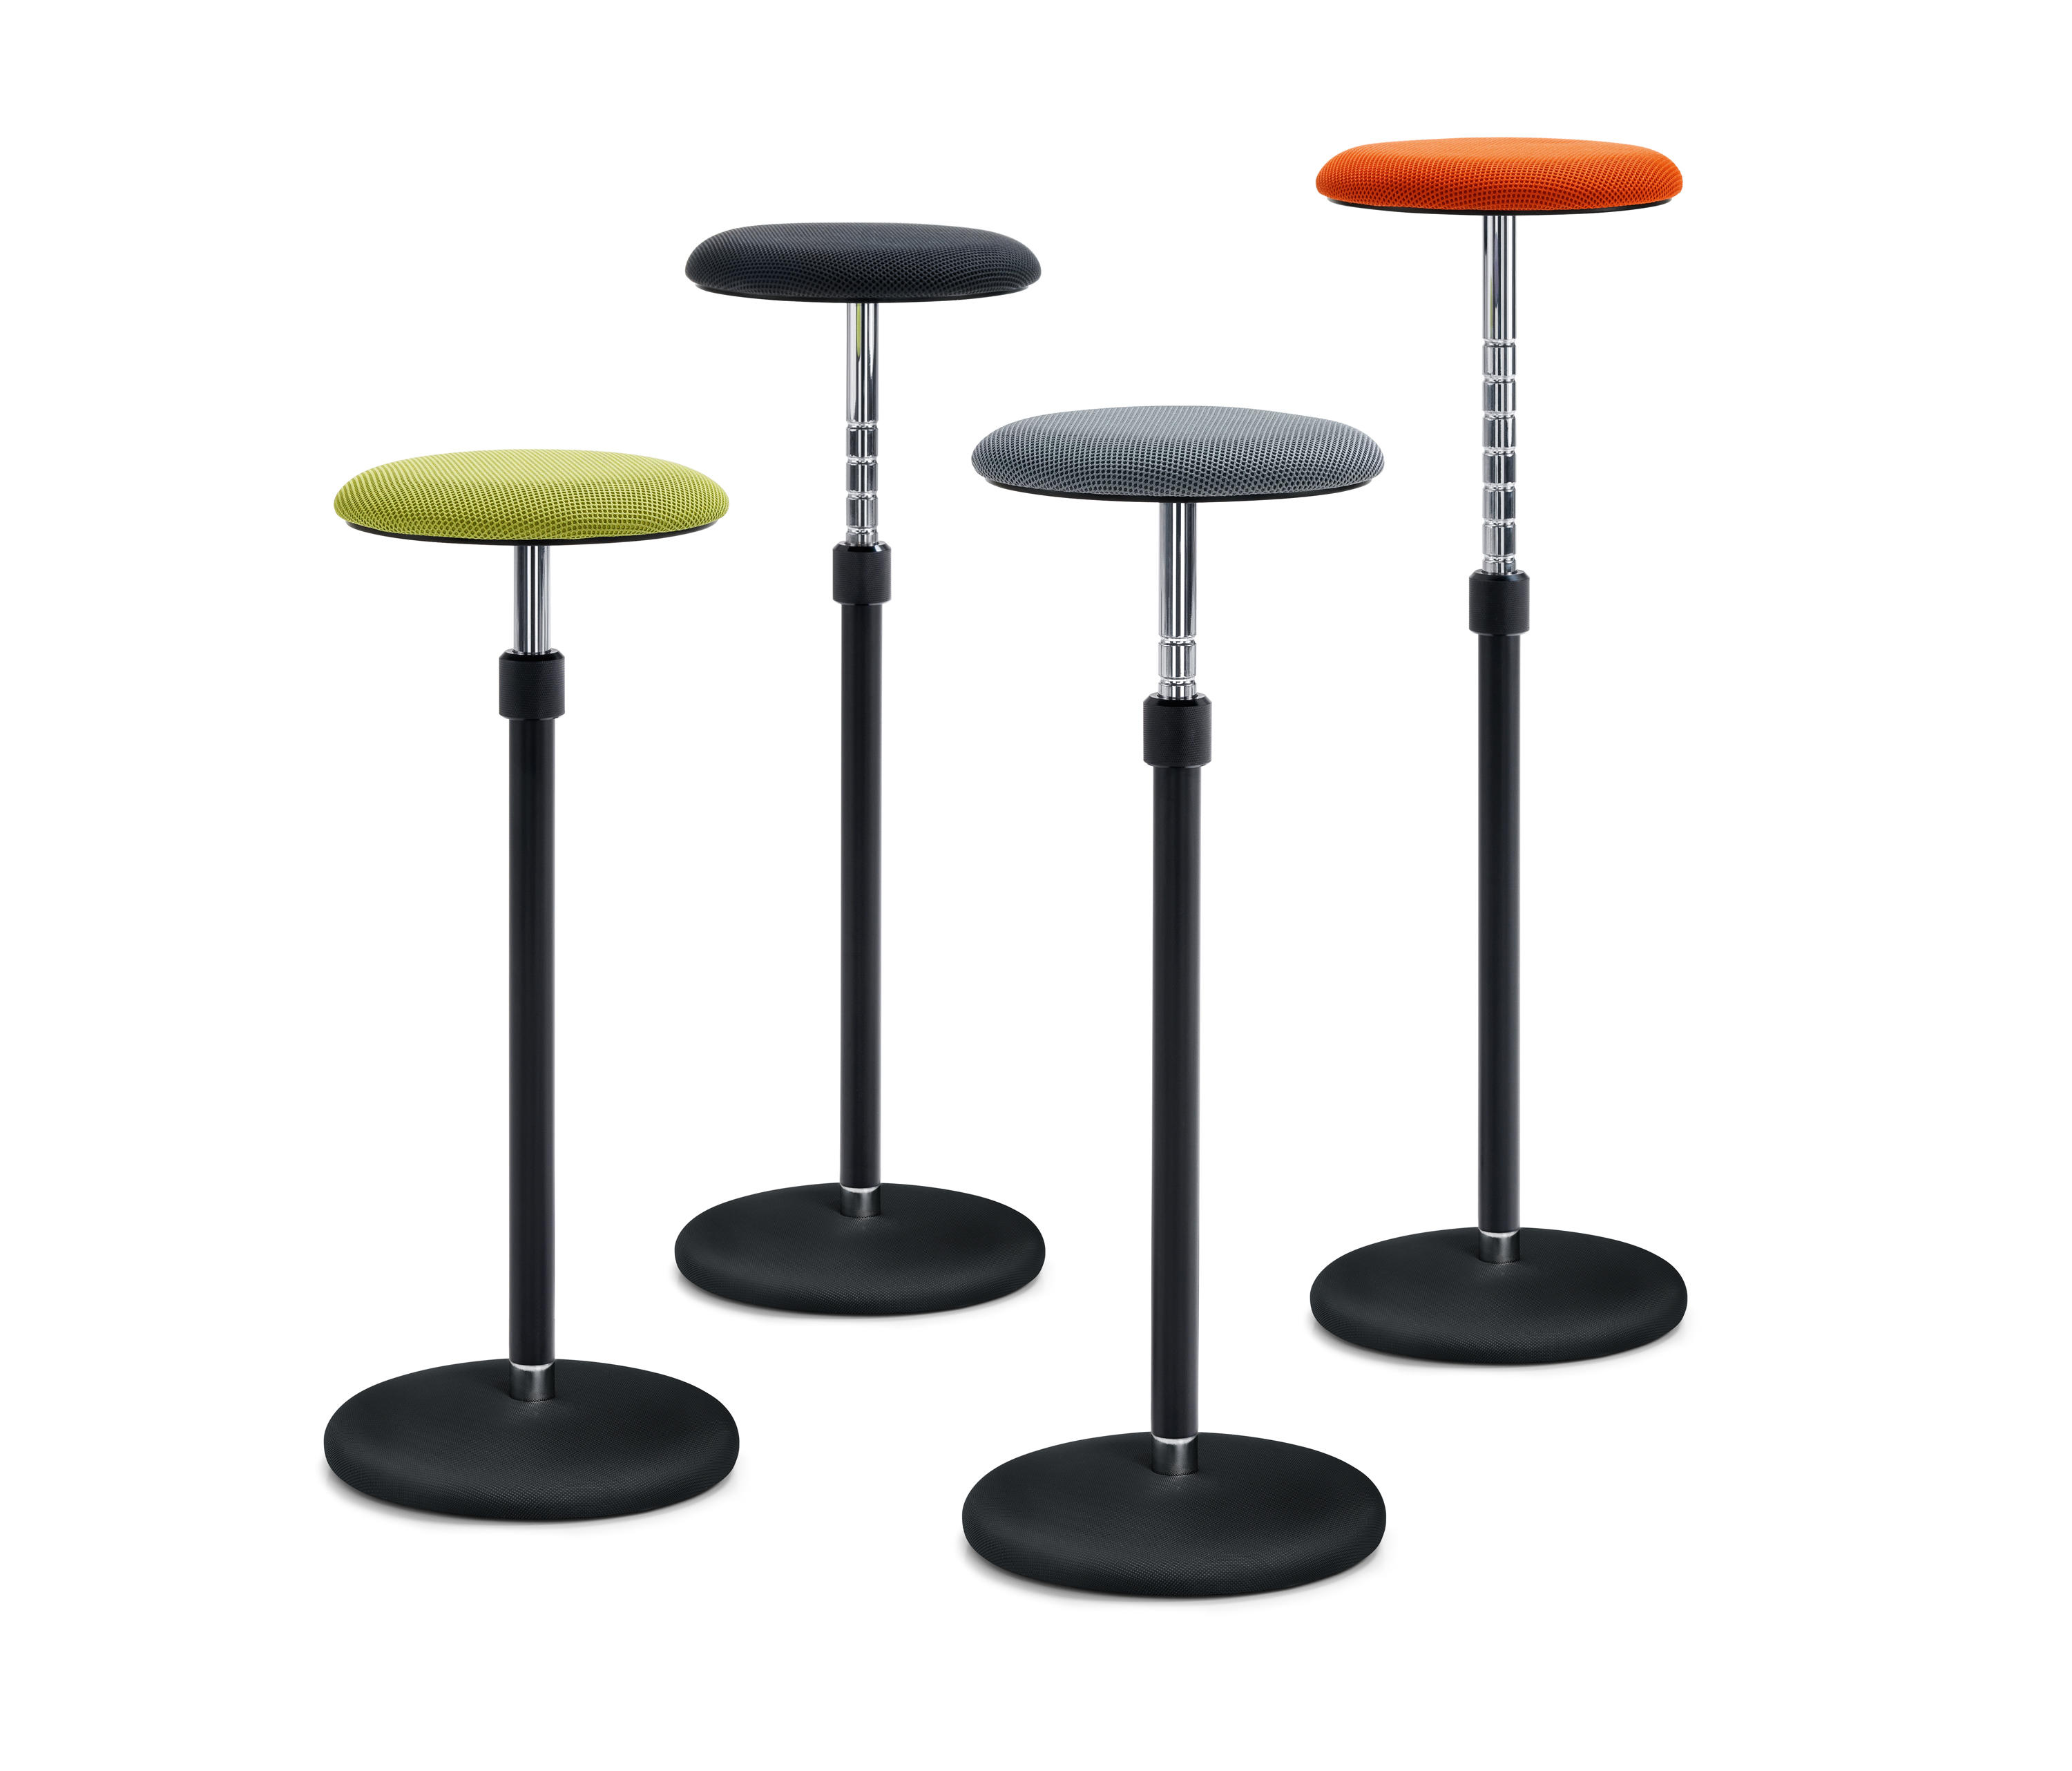 stand lean chair parsons seat covers sway stools from girsberger architonic